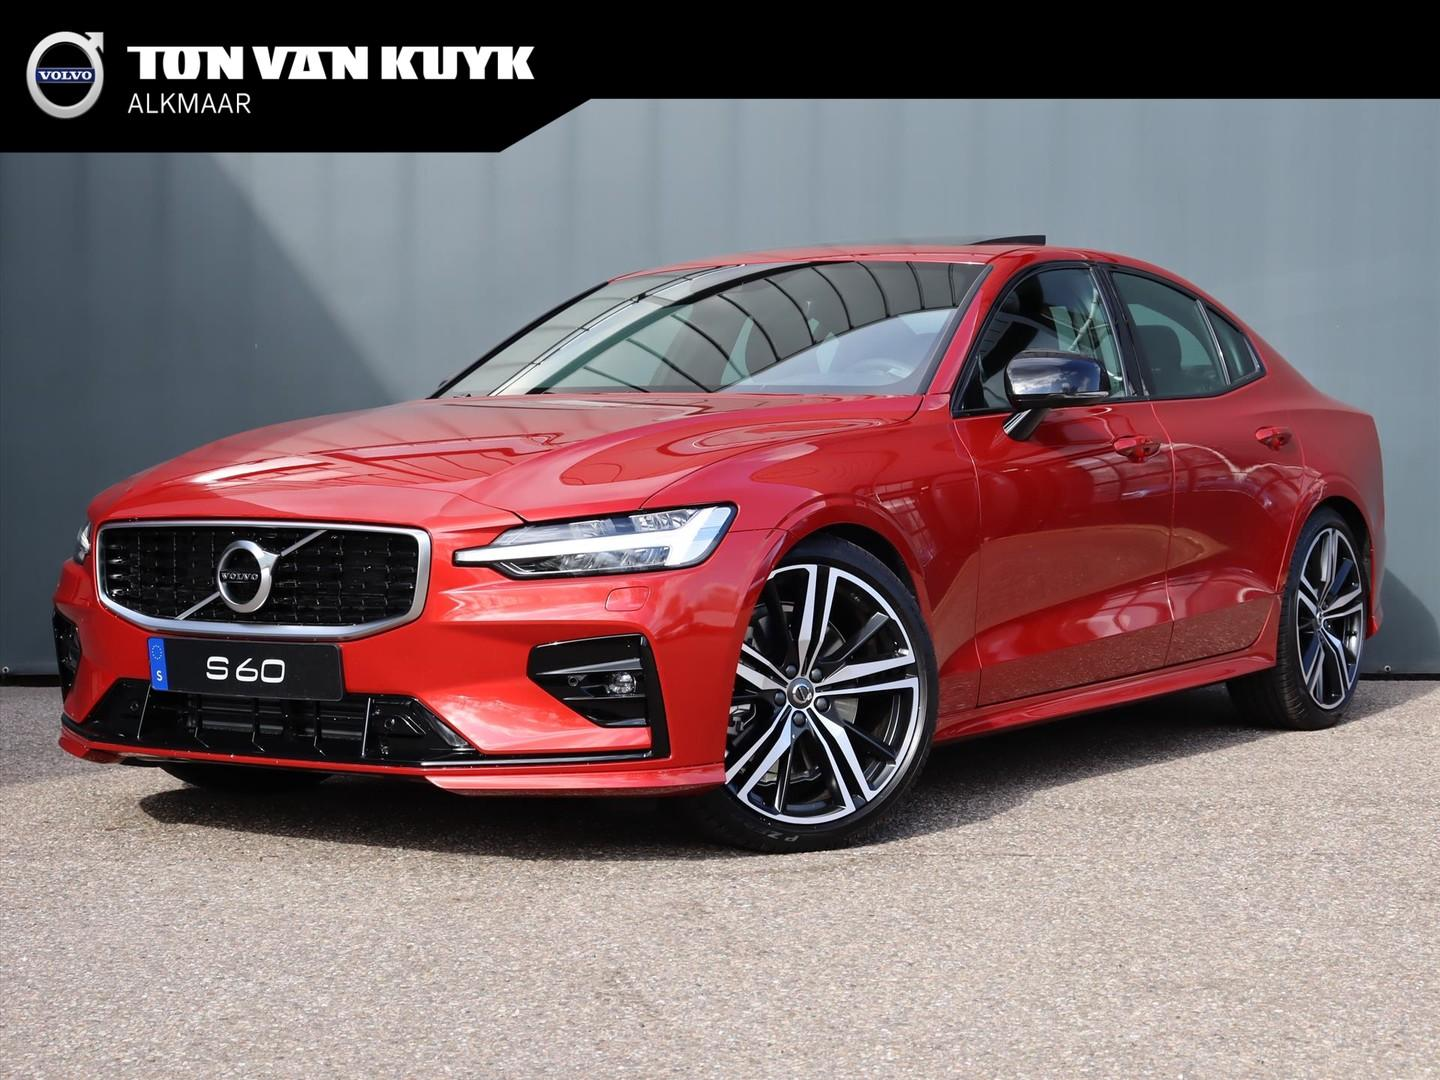 Volvo S60 New t5 250pk automaat r-design / intro edition / luxury line / styling kit